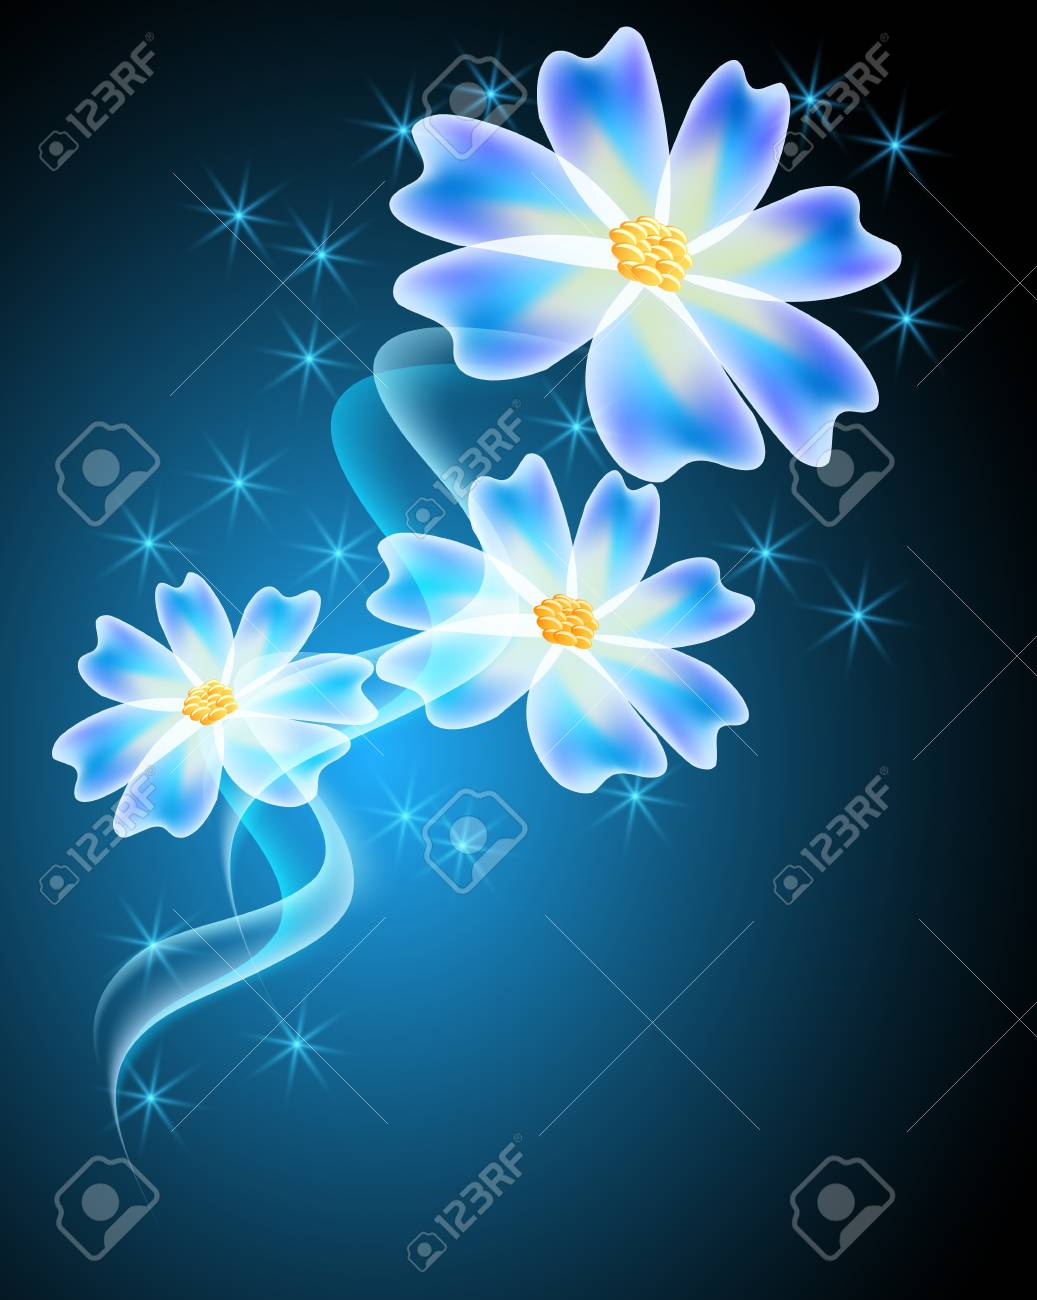 neon flowers with shiny stars and firework royalty free cliparts